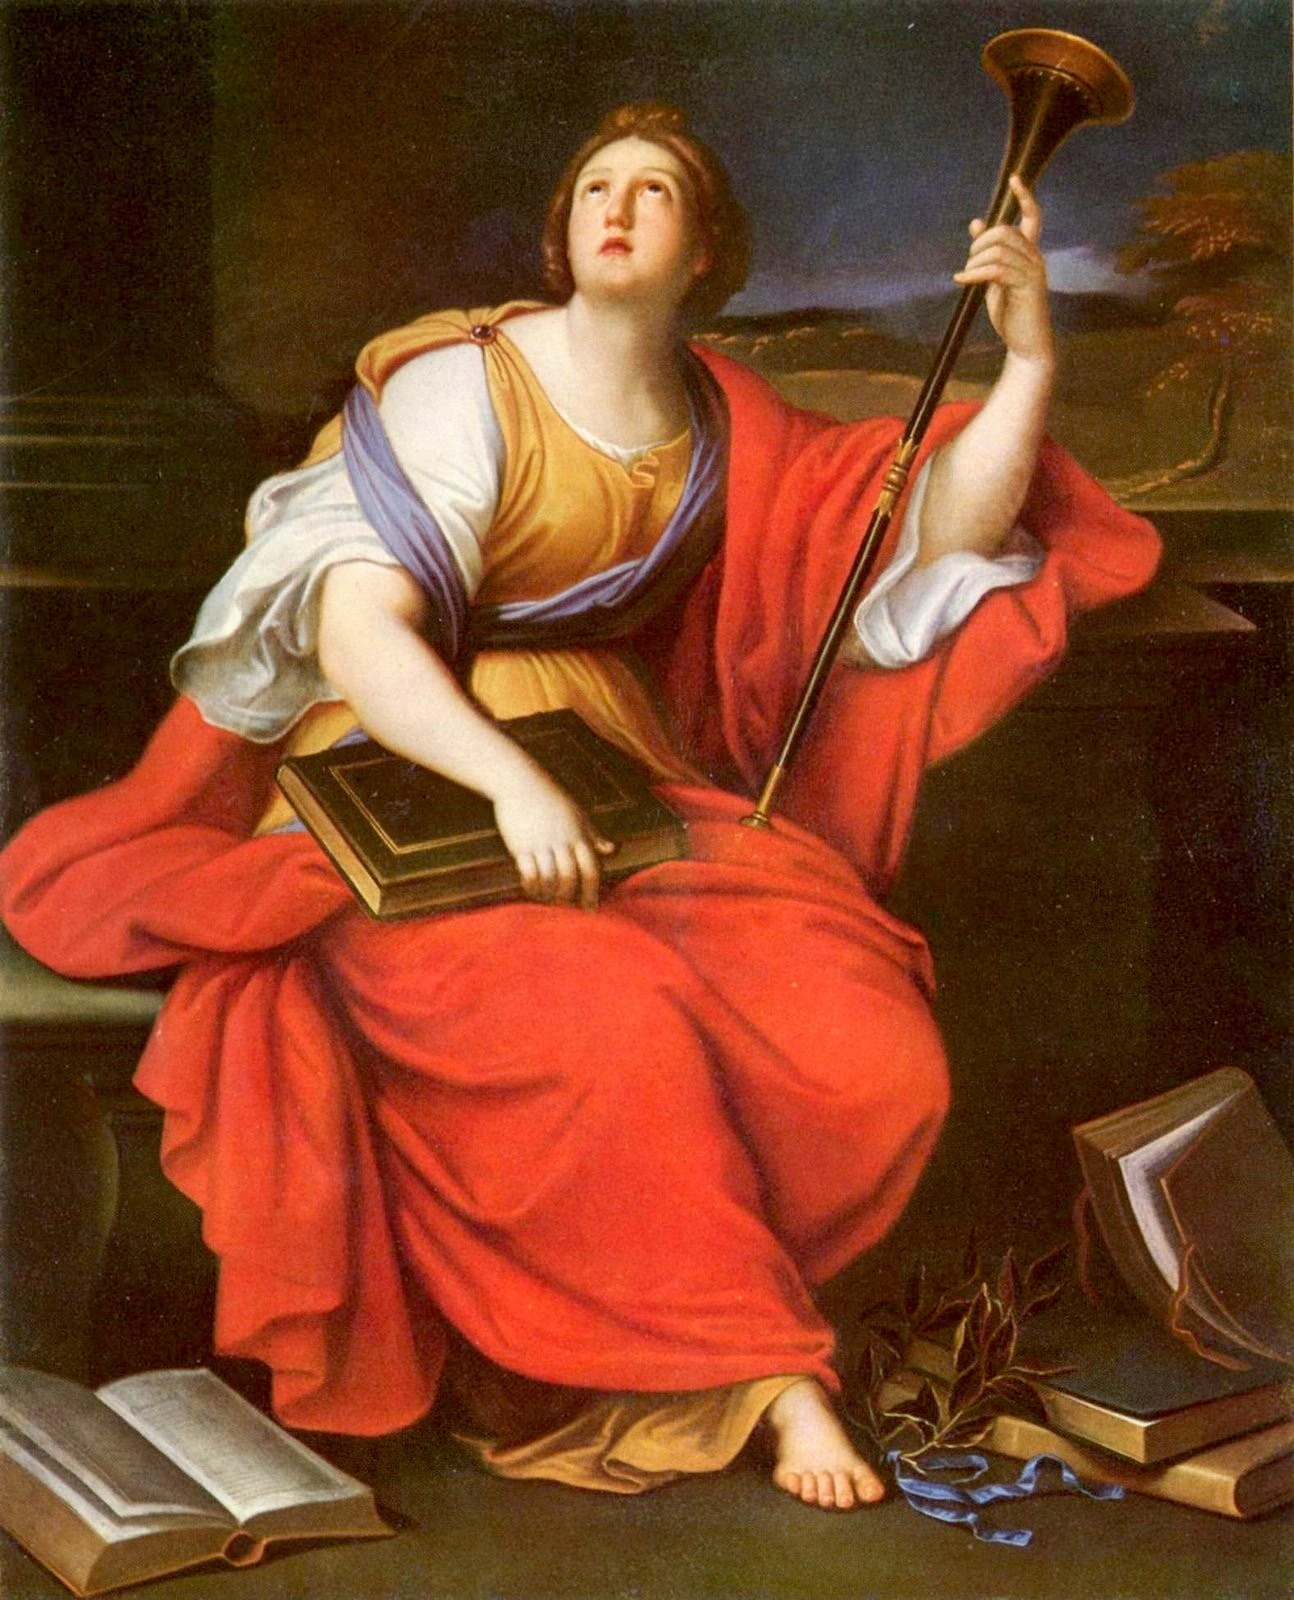 Sing to me O Clio! Muse of history, of stochastic self-organization and sensitive dependence upon initial conditions. Tell me O Muse of the Mandelbrot set and of self-similarity across scale: reveal to me the order within disorder!